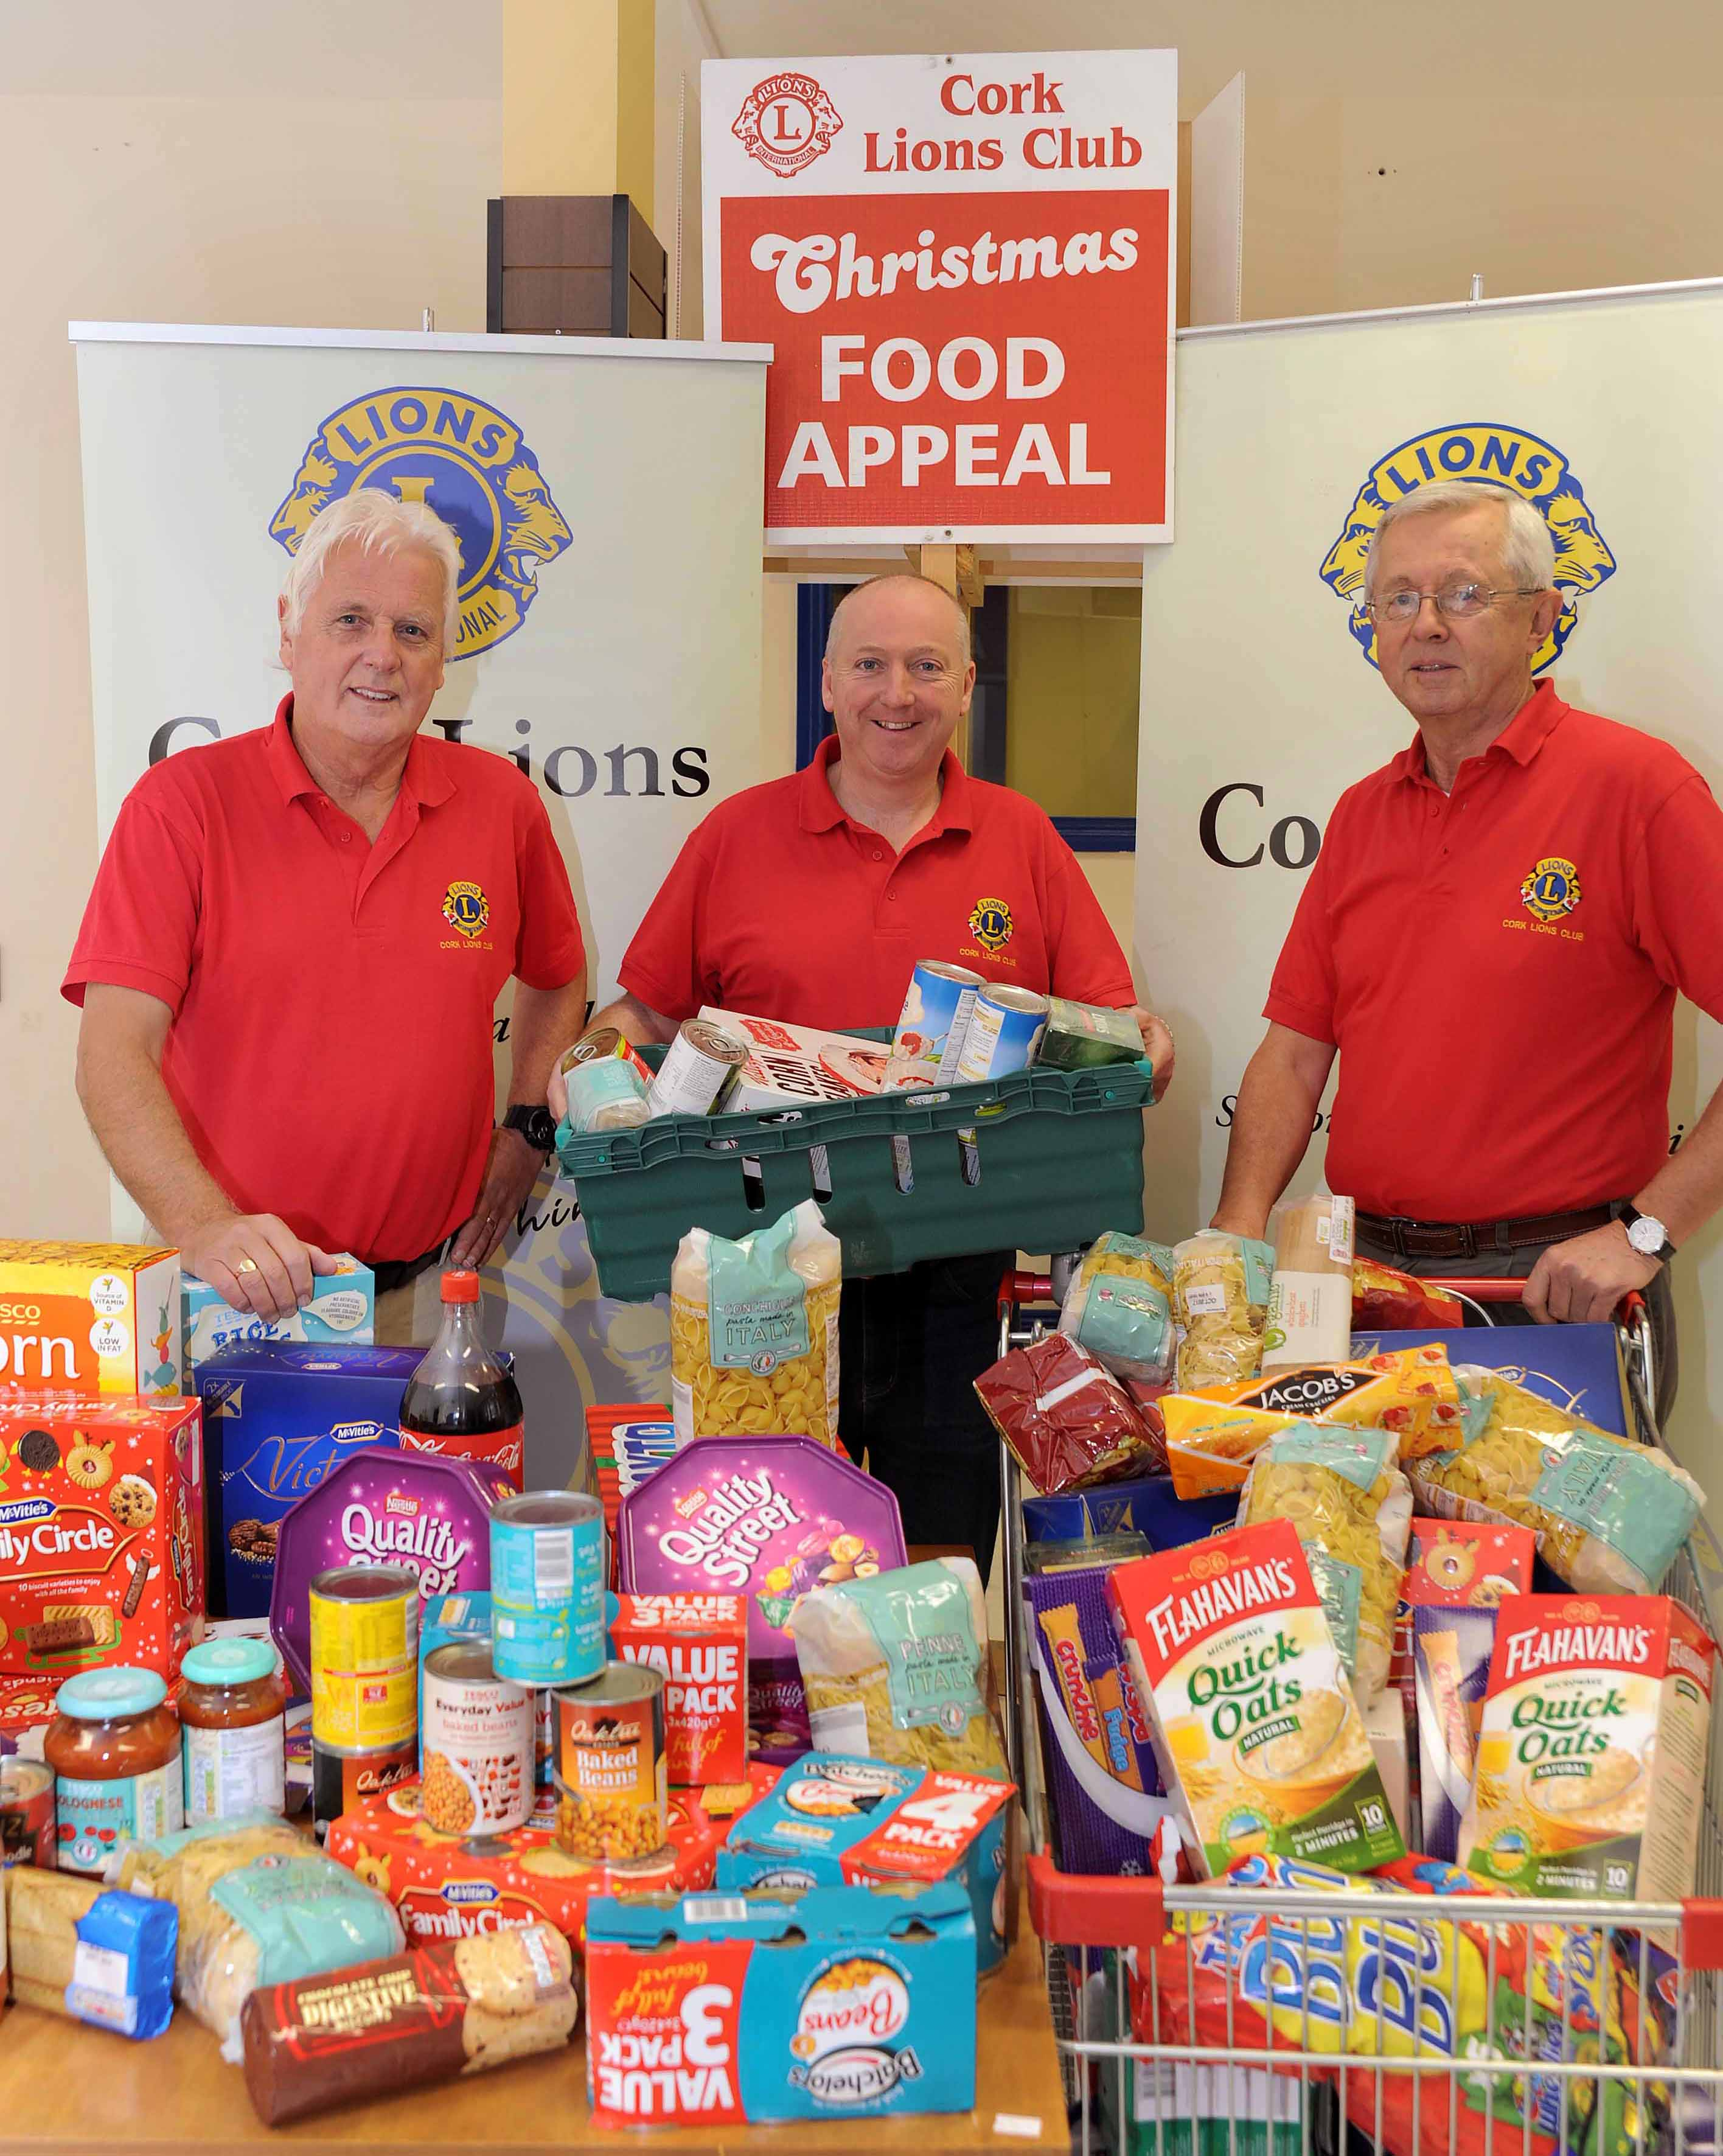 REPRO FREE 03/12/2015 Der Cogan (President), Simon Stokes (Christmas Appeal Co-ordinator) and Tim Donovan (Hon. Sec.) launching the Cork Lions Club Christmas Food Appeal. Gifts for the appeal will be collected at Merchant's Quay SuperValu Thursday 10th - Saturday 12th and at Ballyvolane Dunnes Stores Thursday 10th - Friday 11th and at Glanmire SuperValu Monday 14th - Wednesday 16th. The Lions Clubs are completely voluntary and every cent goes to charity. Photo: Billy macGill